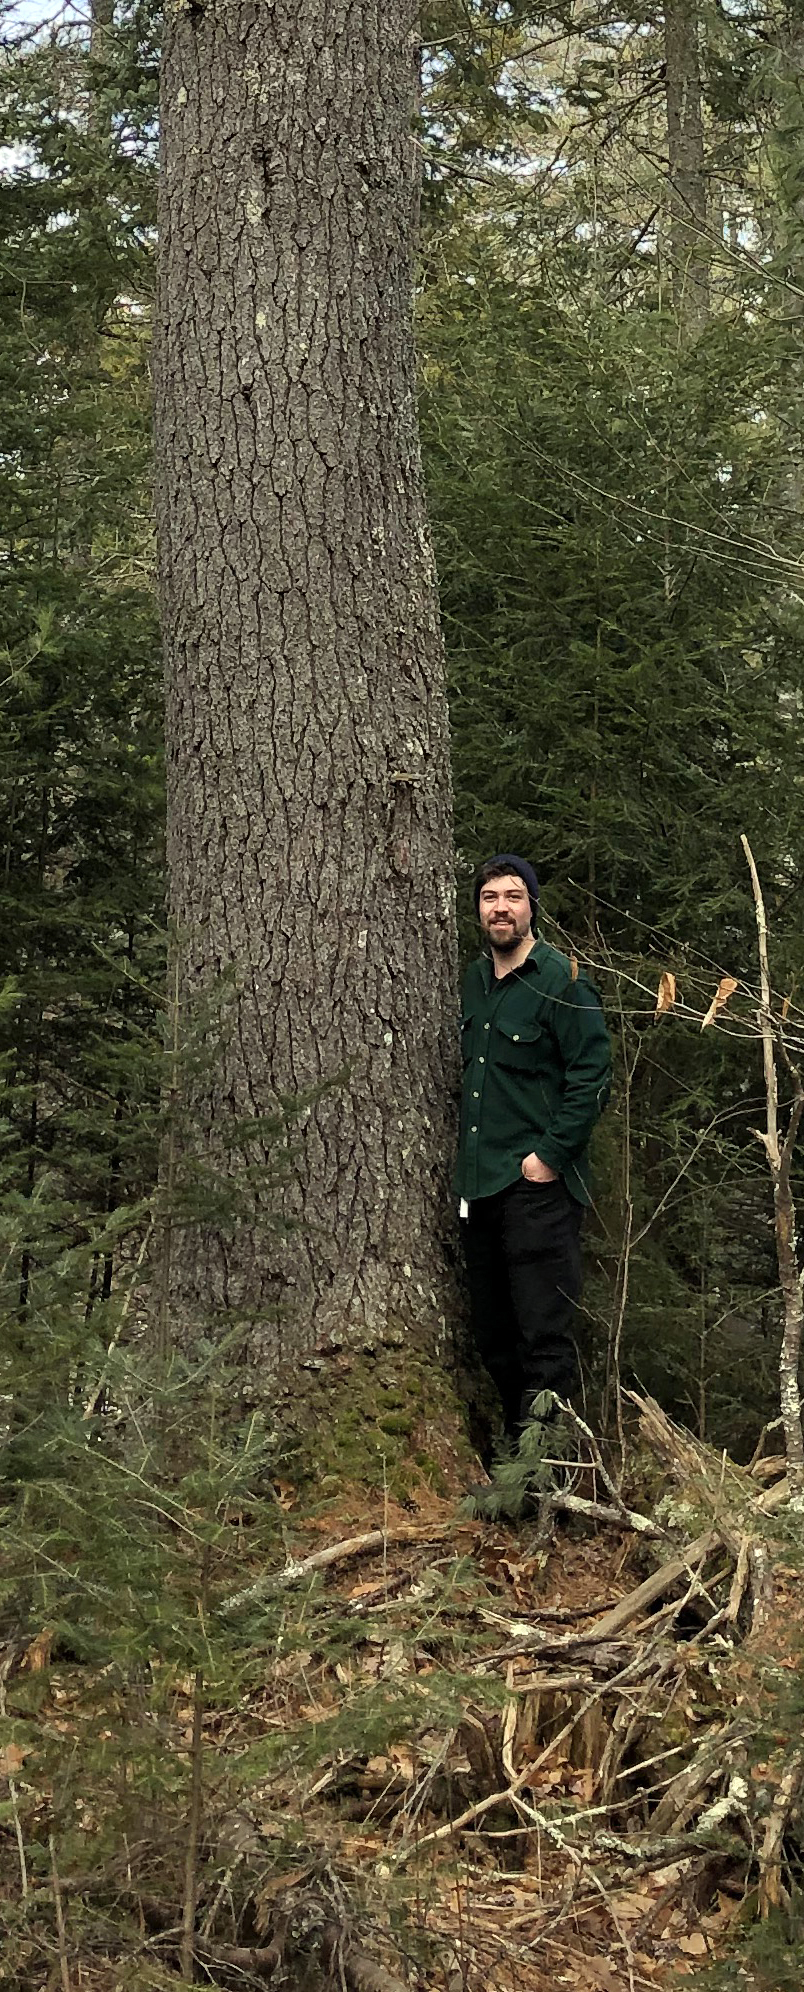 Noah Begin stands next to a 3-foot-diameter pine tree on the Castner Creek property in Damariscotta. (Photo courtesy Jenny Begin)